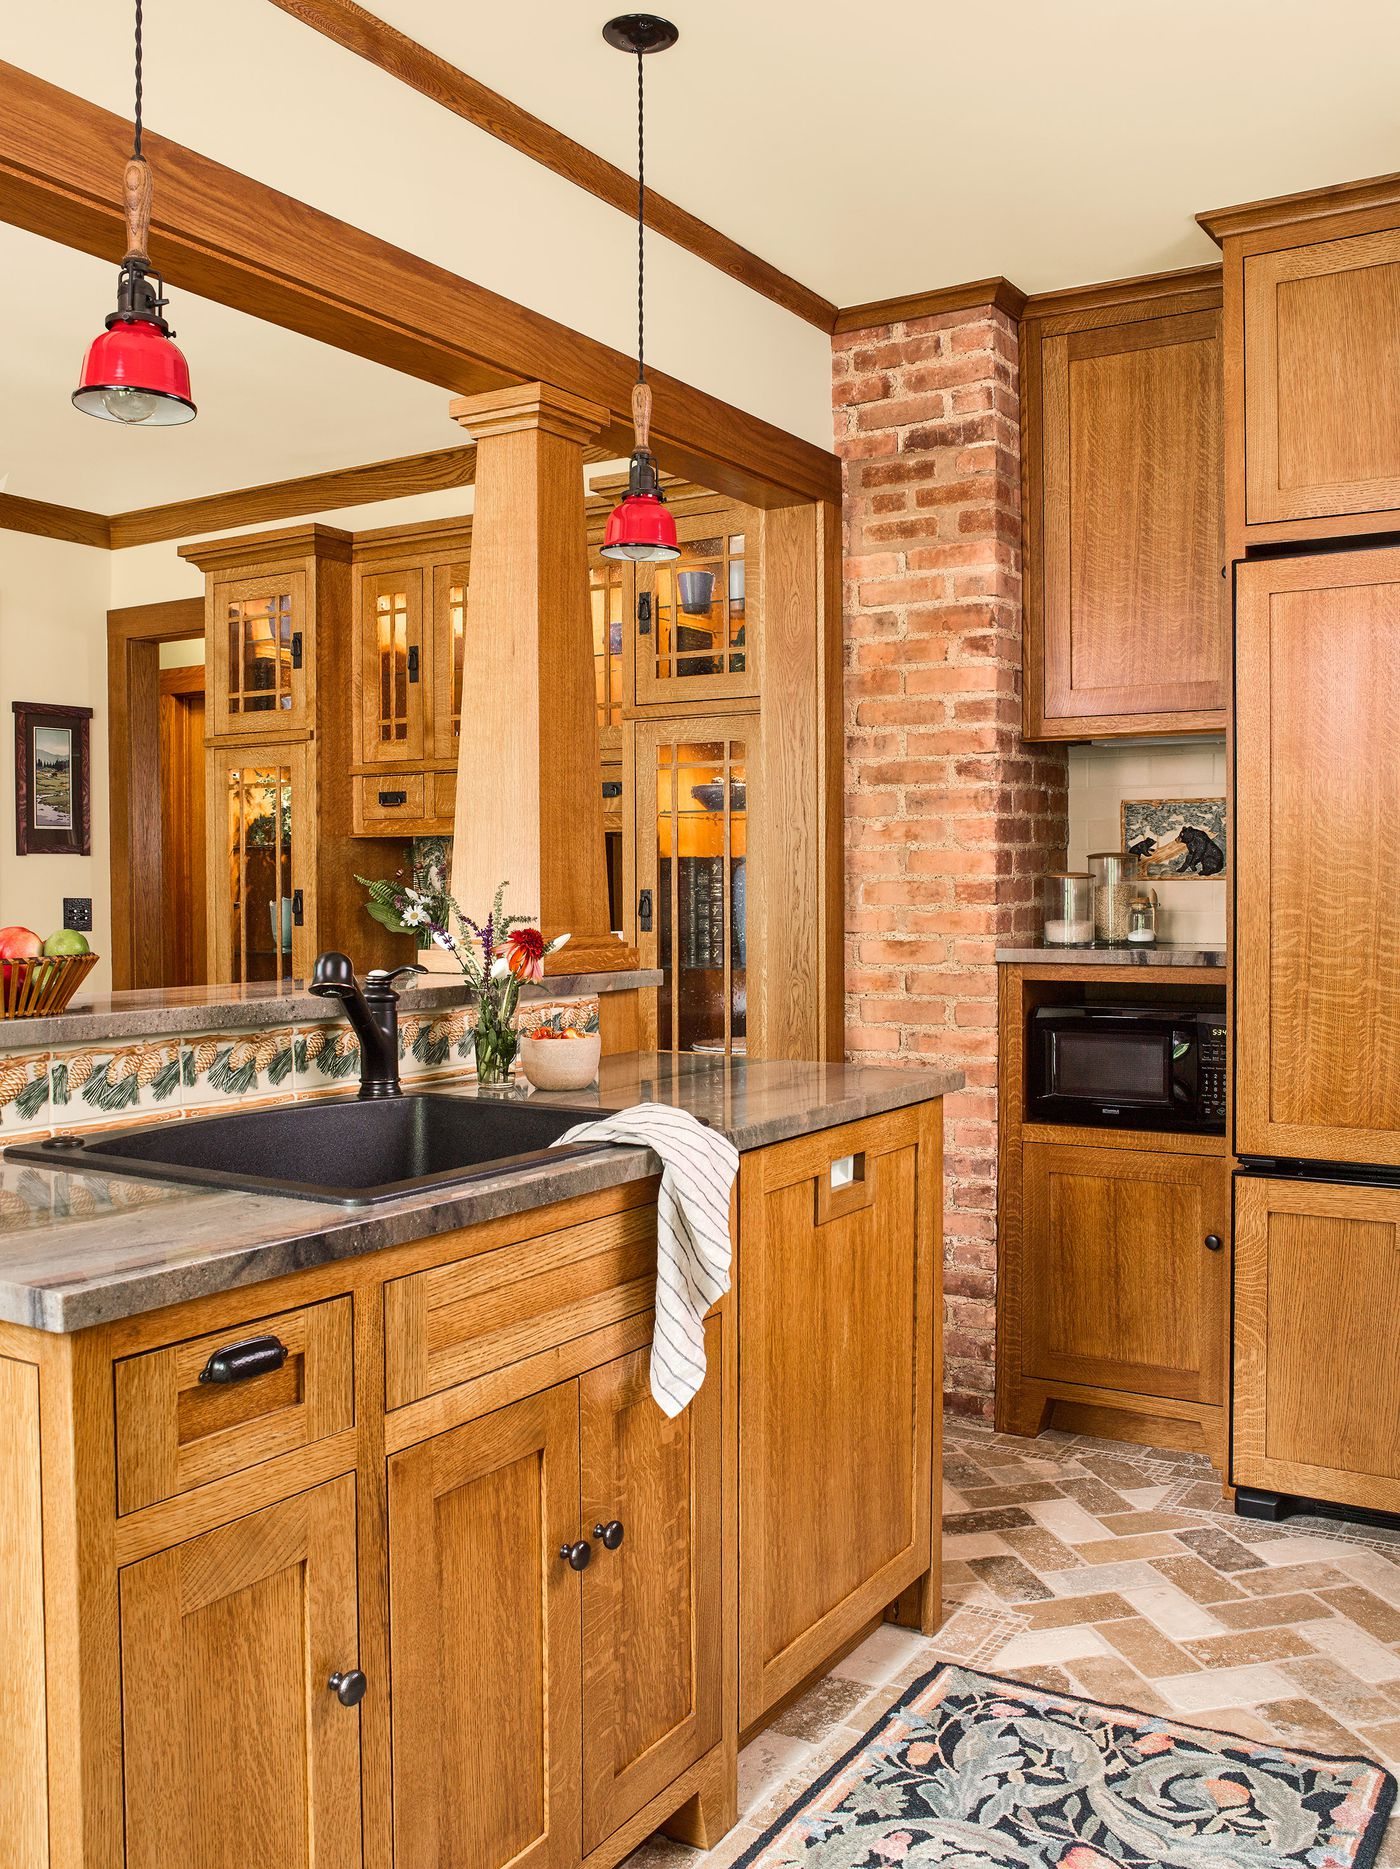 Craftsman Sears Kit House Remodel This Old House